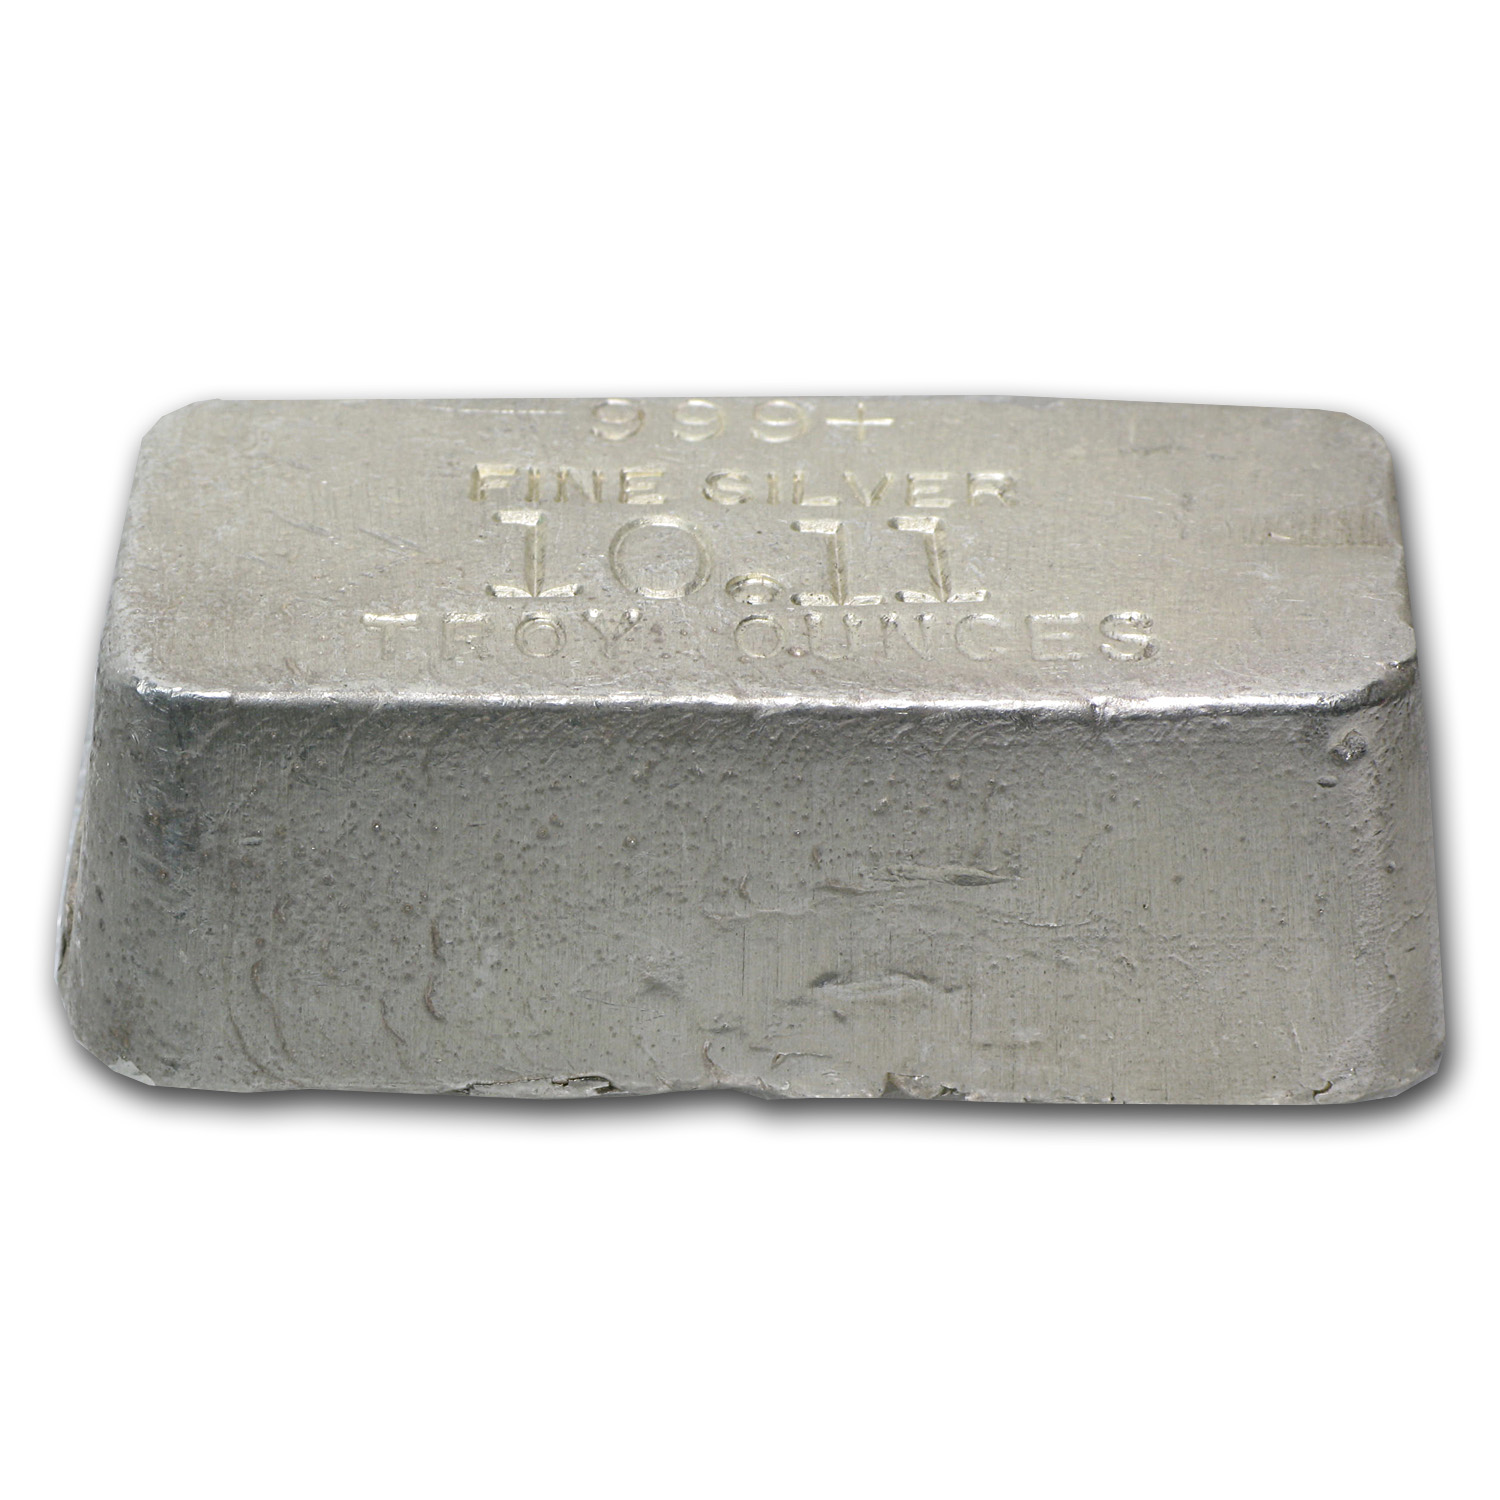 10.11 oz Silver Bars - Rarities Mint (Poured)